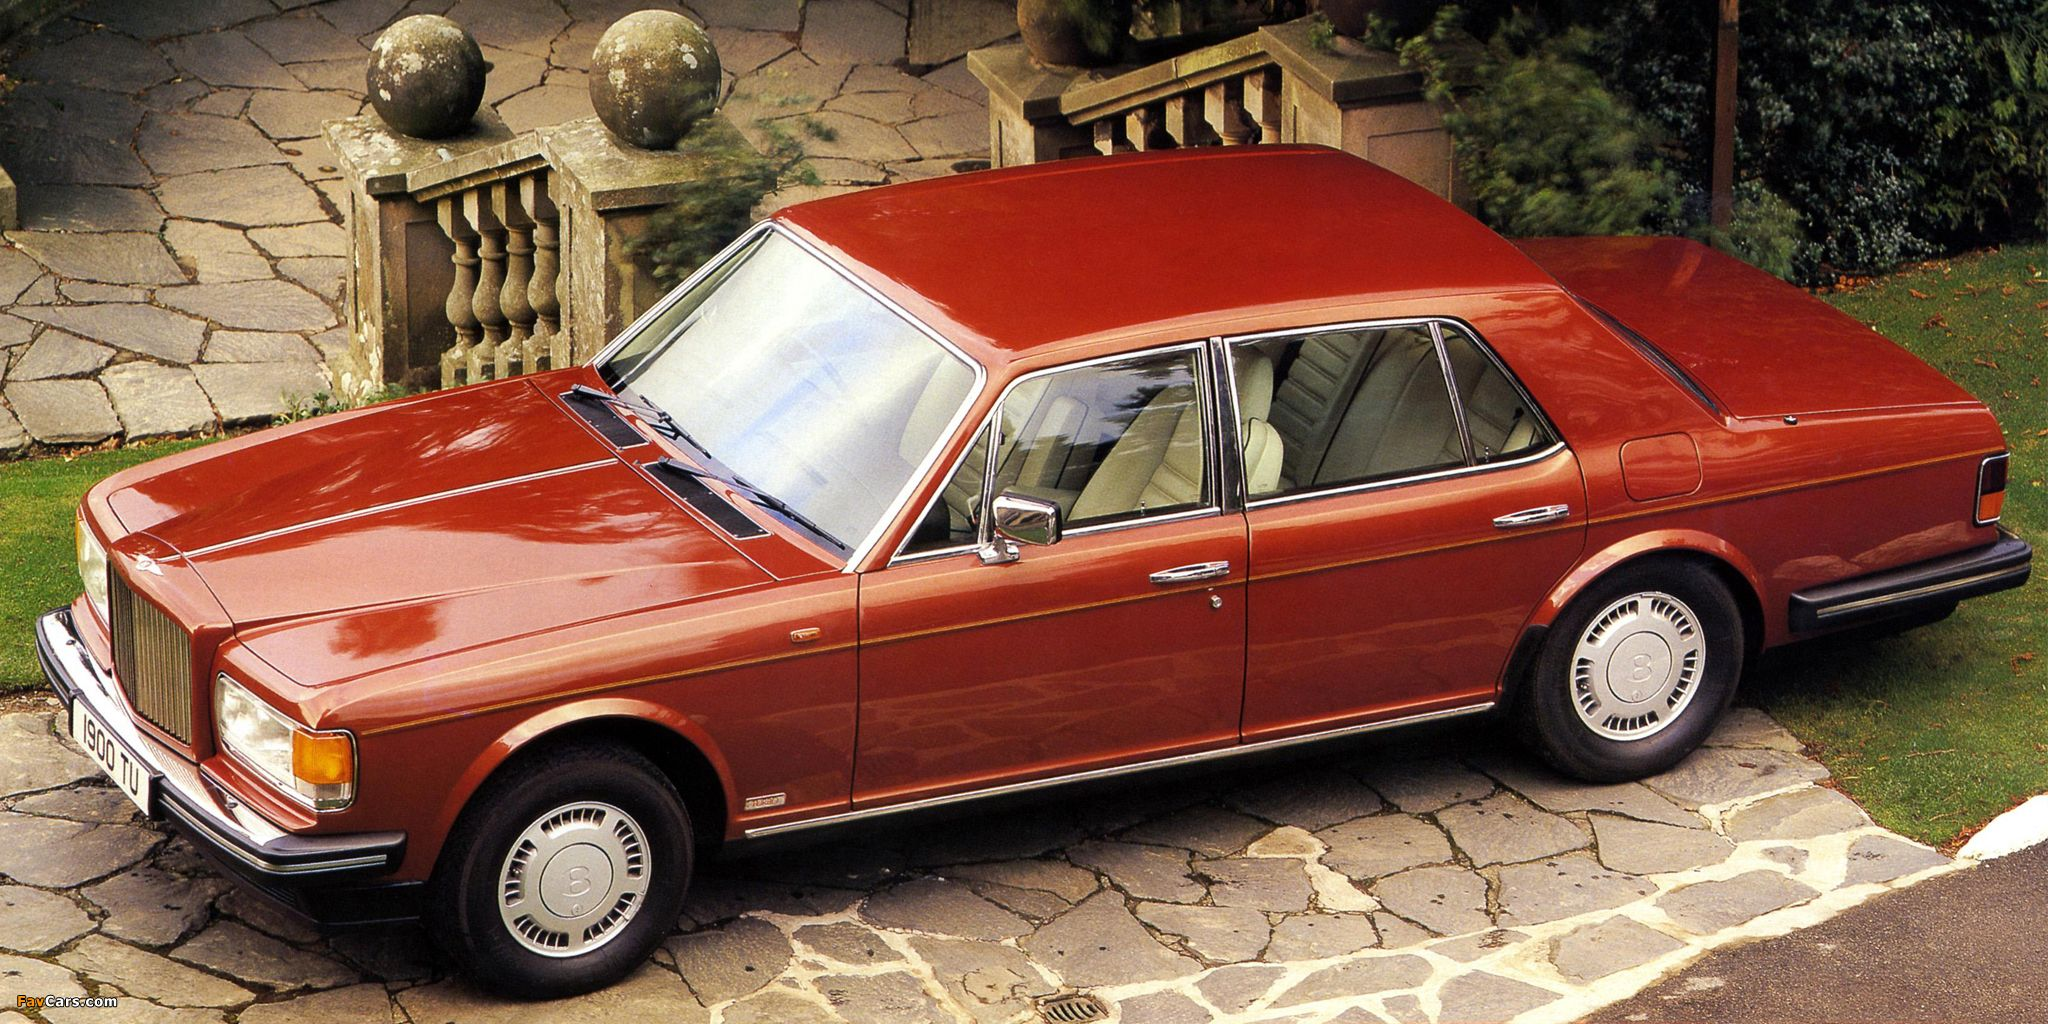 """<p>Like the Arnage, the Bentley Turbo R was also a $200,000 car when it first debuted. It was much more athletic than the Mulsanne Turbo, which meant it had a bit of handling to go along with its powerful engine. These days, the pride of the late 1980s can be had at <a href=""""http://www.whqualitymotors.com/vehicle_pages/scbzr03d1mcx35797-1991-bentley-turbo-r-used-sedan-reseda-ca.shtml"""" target=""""_blank"""">more than a 90% discount</a>.</p>"""